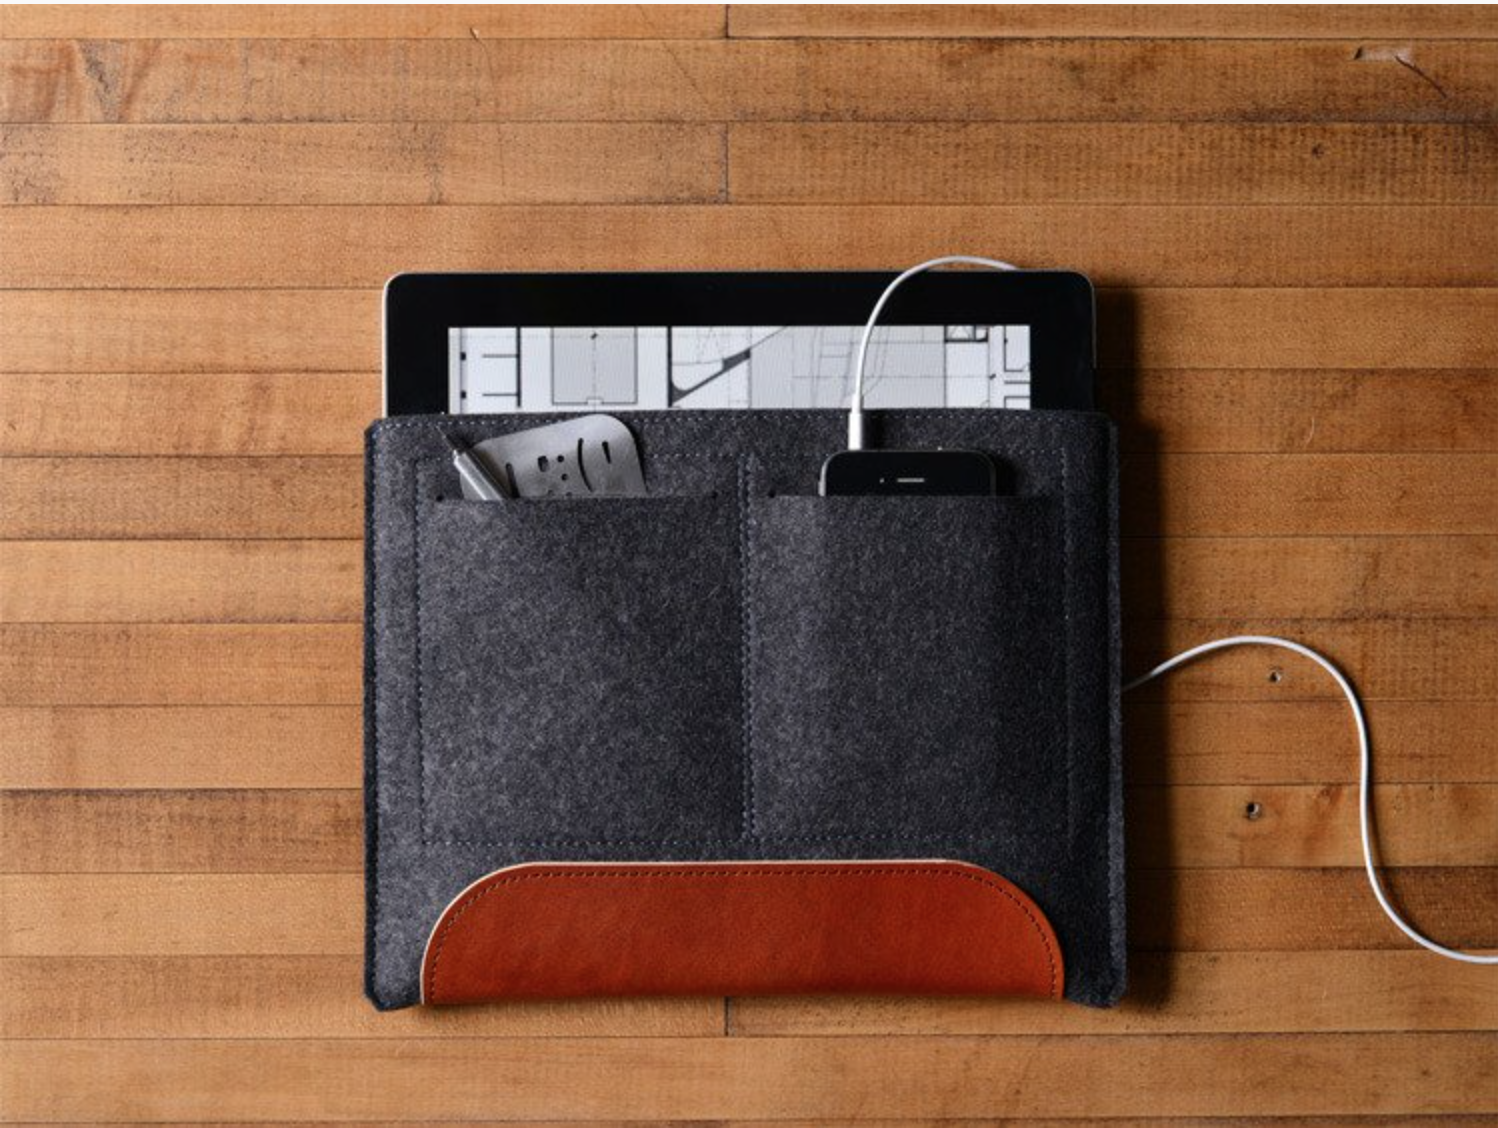 I found Byrd and Belle a few years ago when I was looking for a sleeve for my iPad. The leather accent is beautiful and I get compliments everywhere I go. I just ordered this iPhone sleeve/wallet for my recently purchased iPhone 5C. The leather fits 4-5 cards on each side, great for clubbing! Can't wait to get it in the mail!  www.byrdandbelle.com